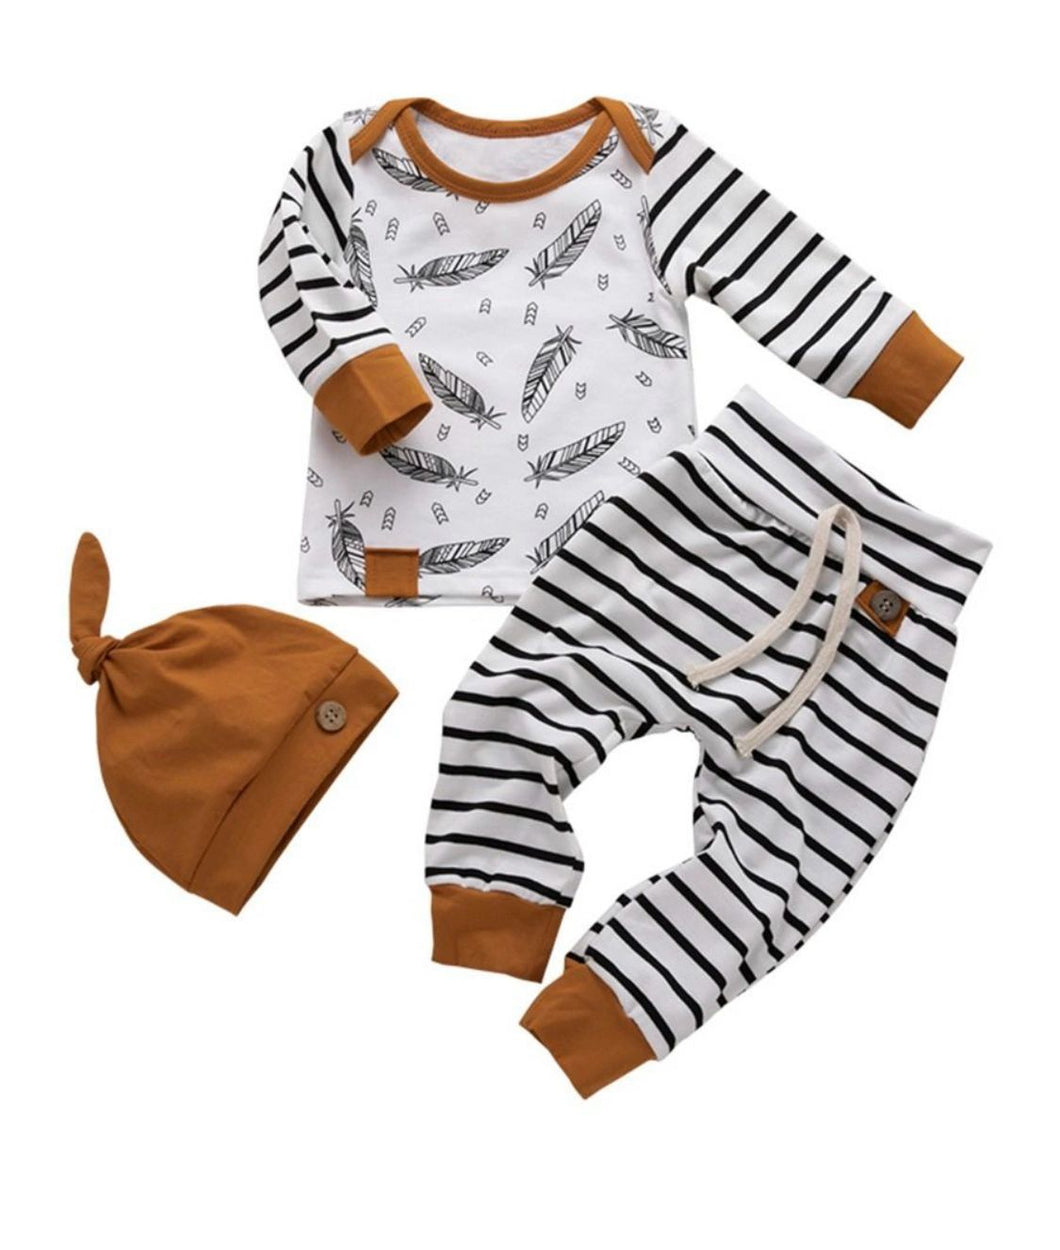 3 piece autumn set